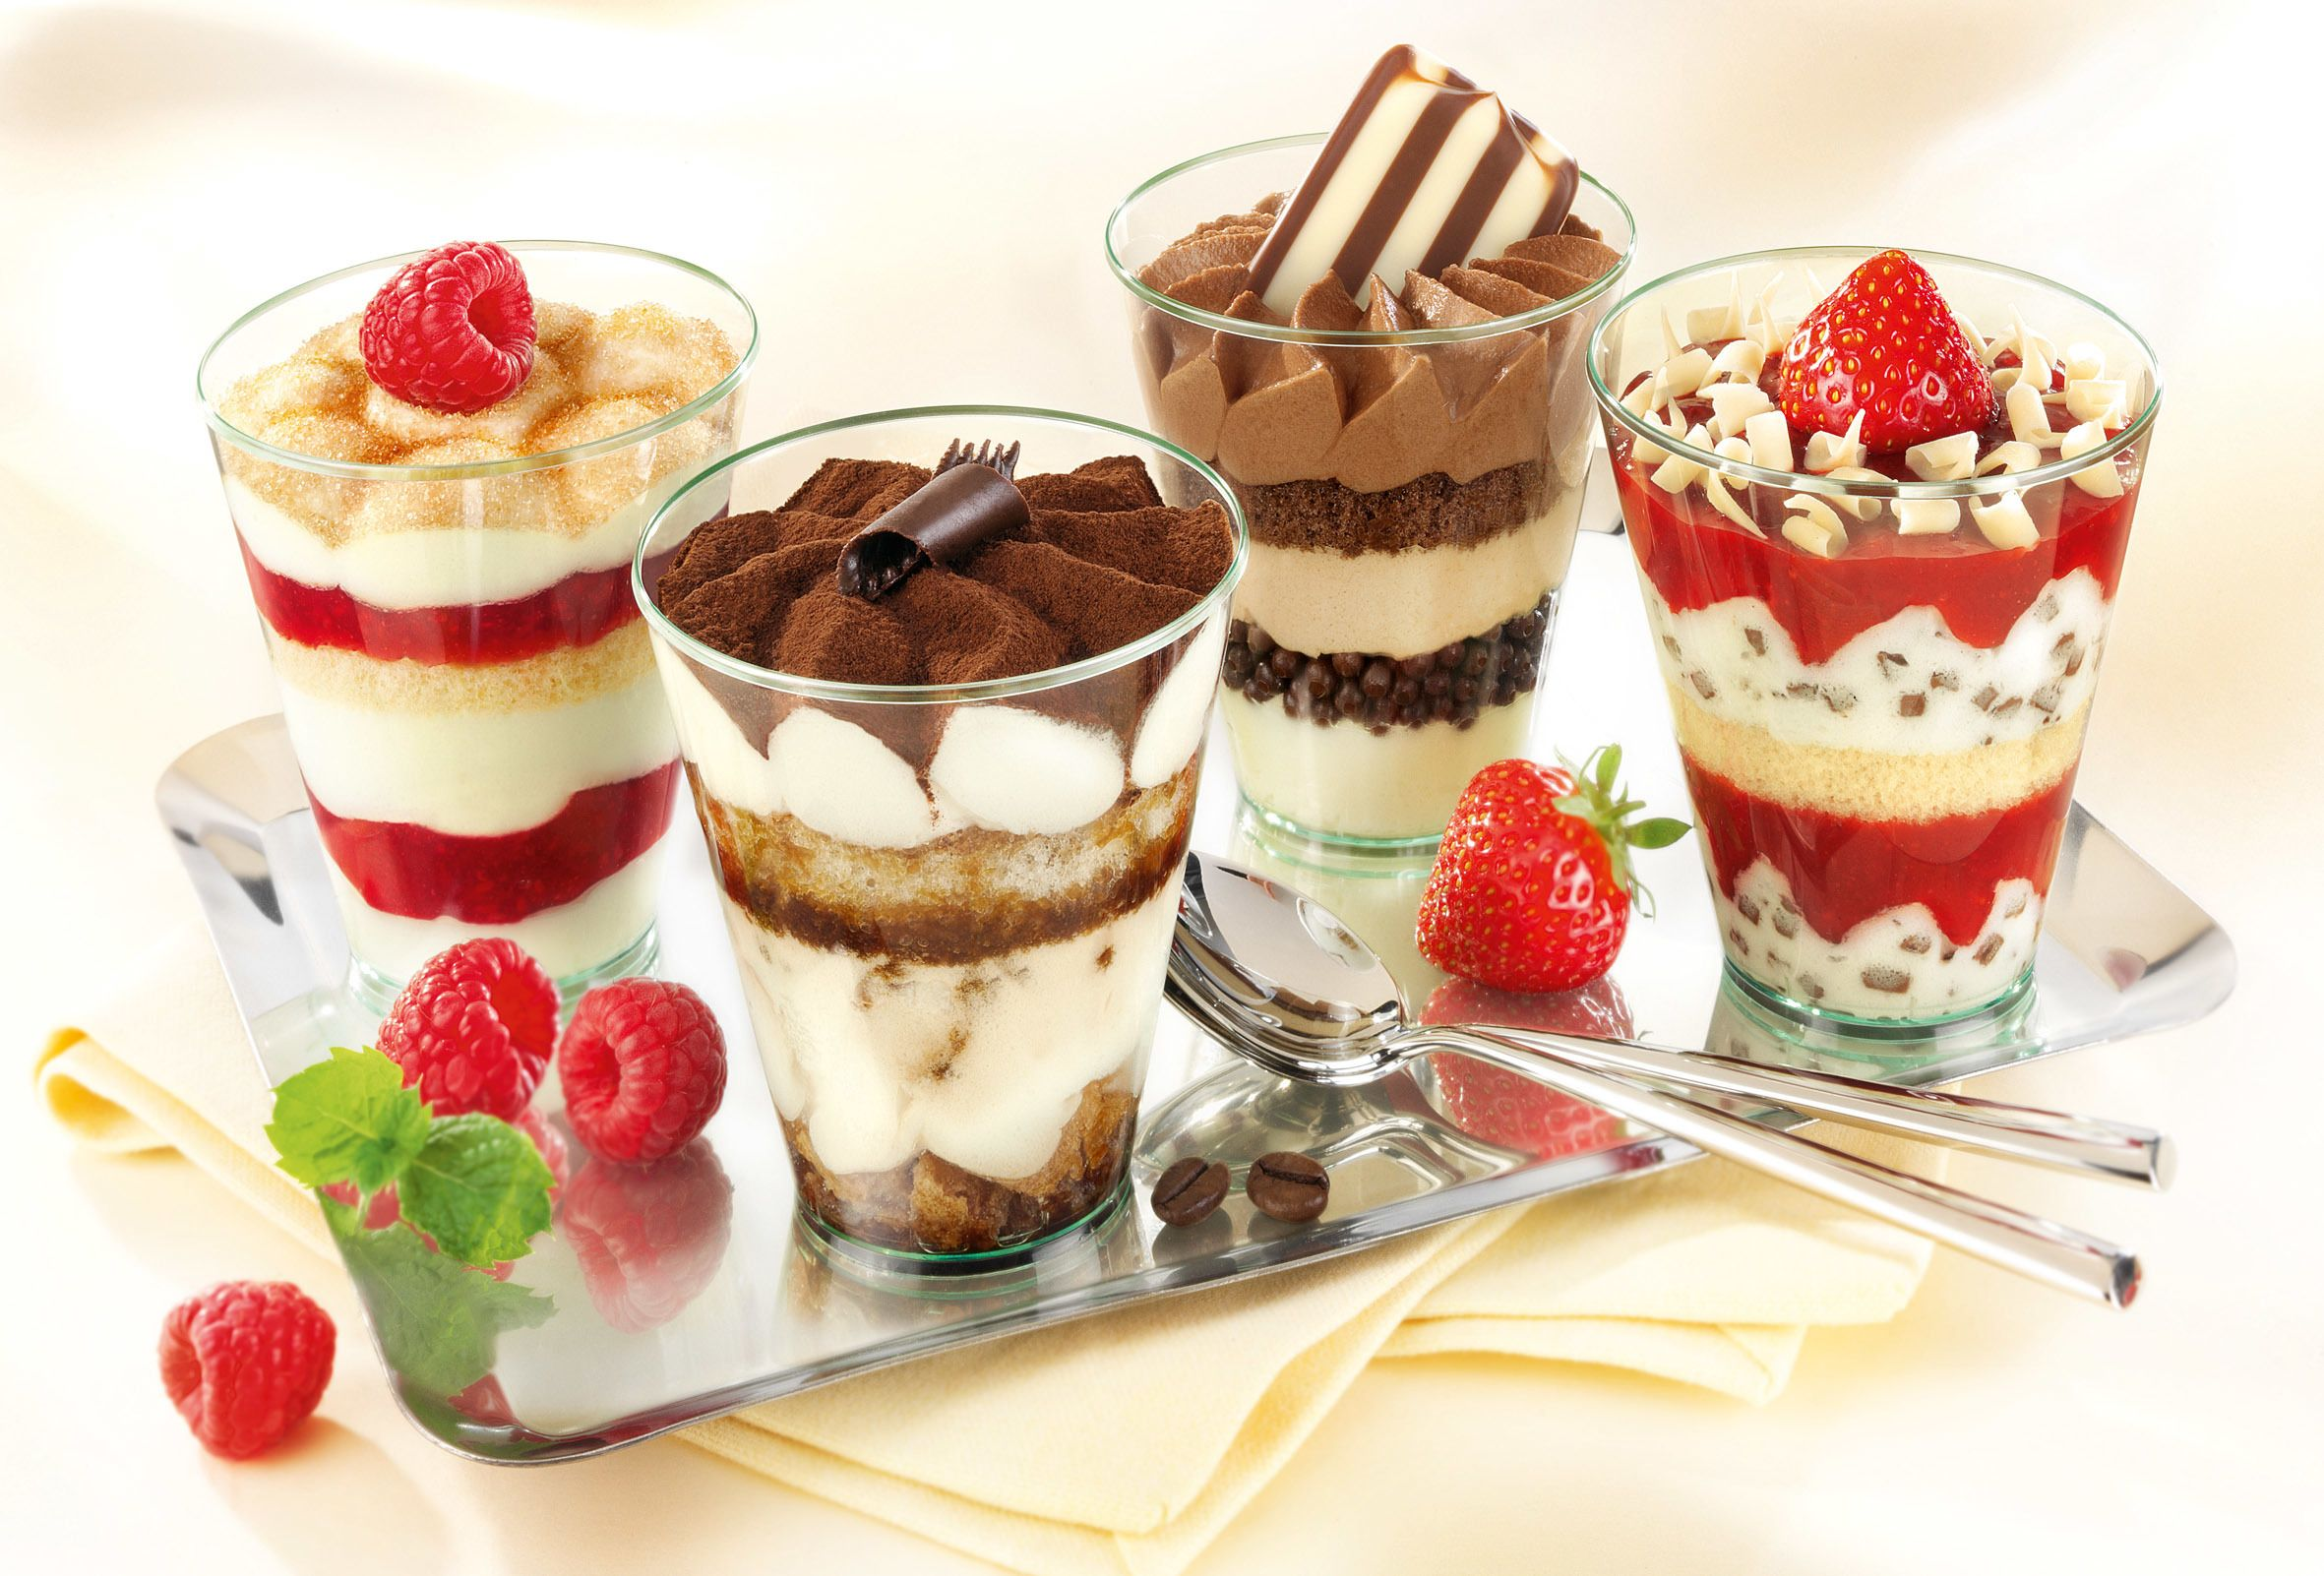 ice cream fresh fruit delicious dessert wallpaper 9464